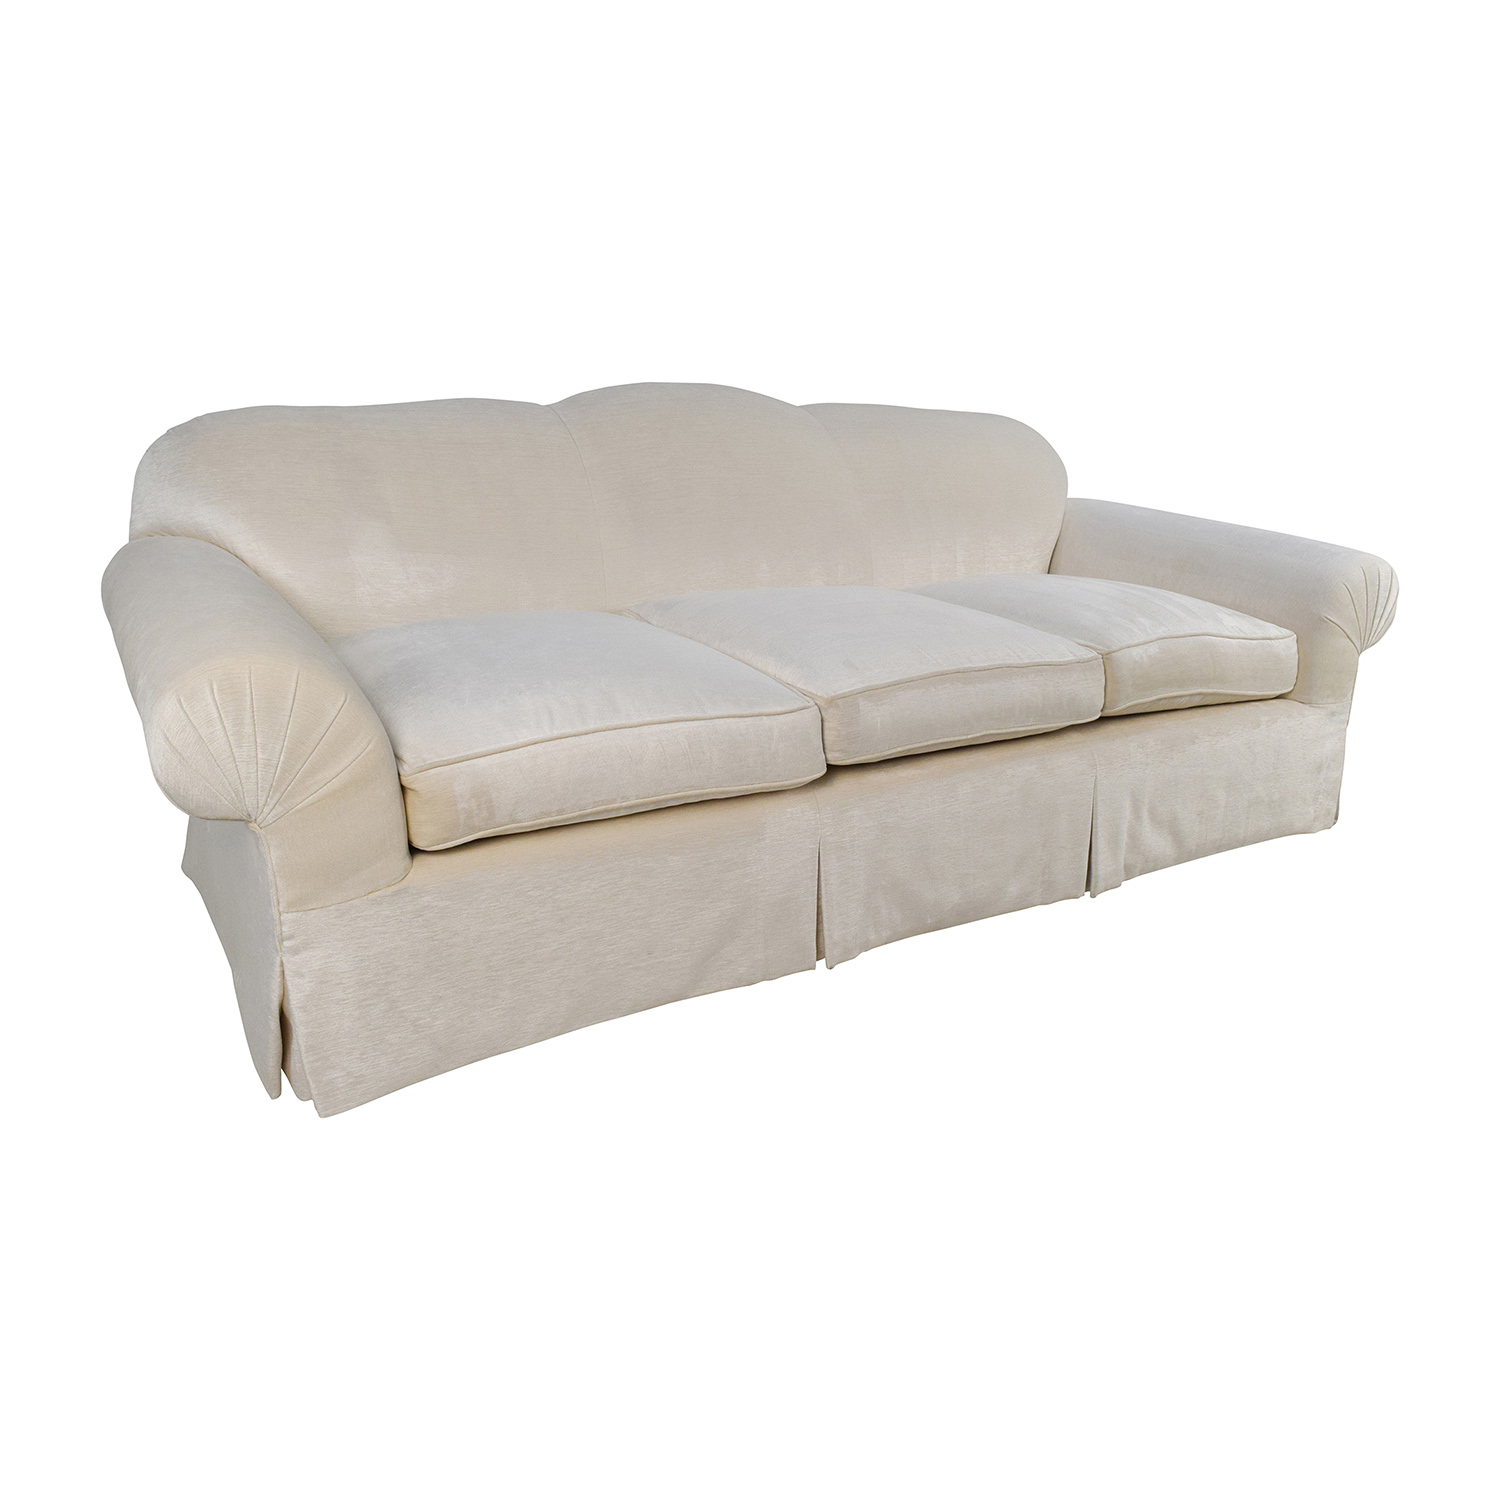 ... Beige 3 Seater Skirted Sofa With Kravet Fabric For Sale ...